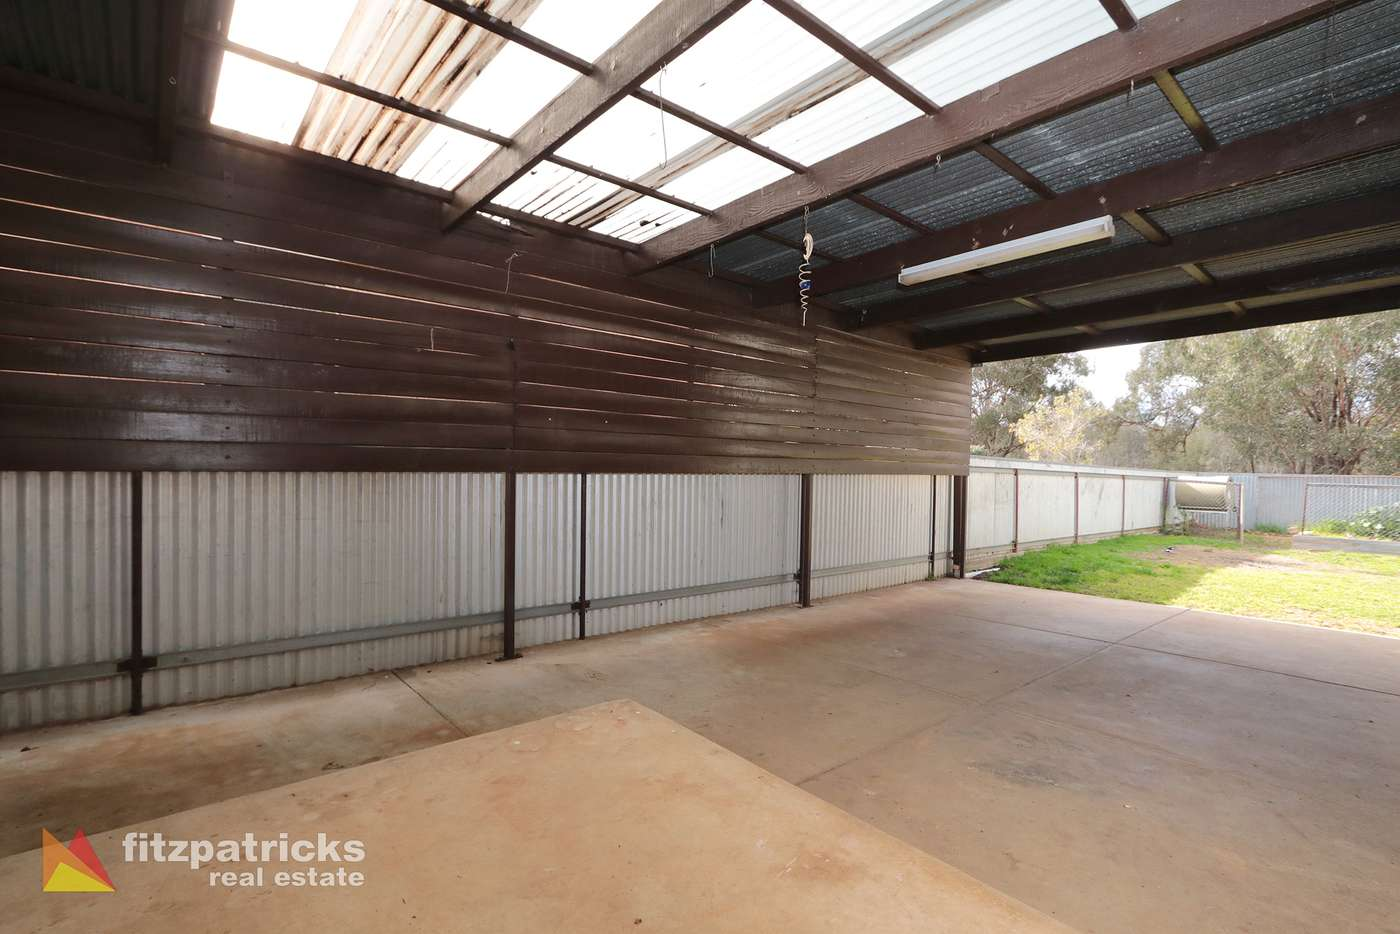 Sixth view of Homely house listing, 37 Montgomery Street, Ashmont NSW 2650